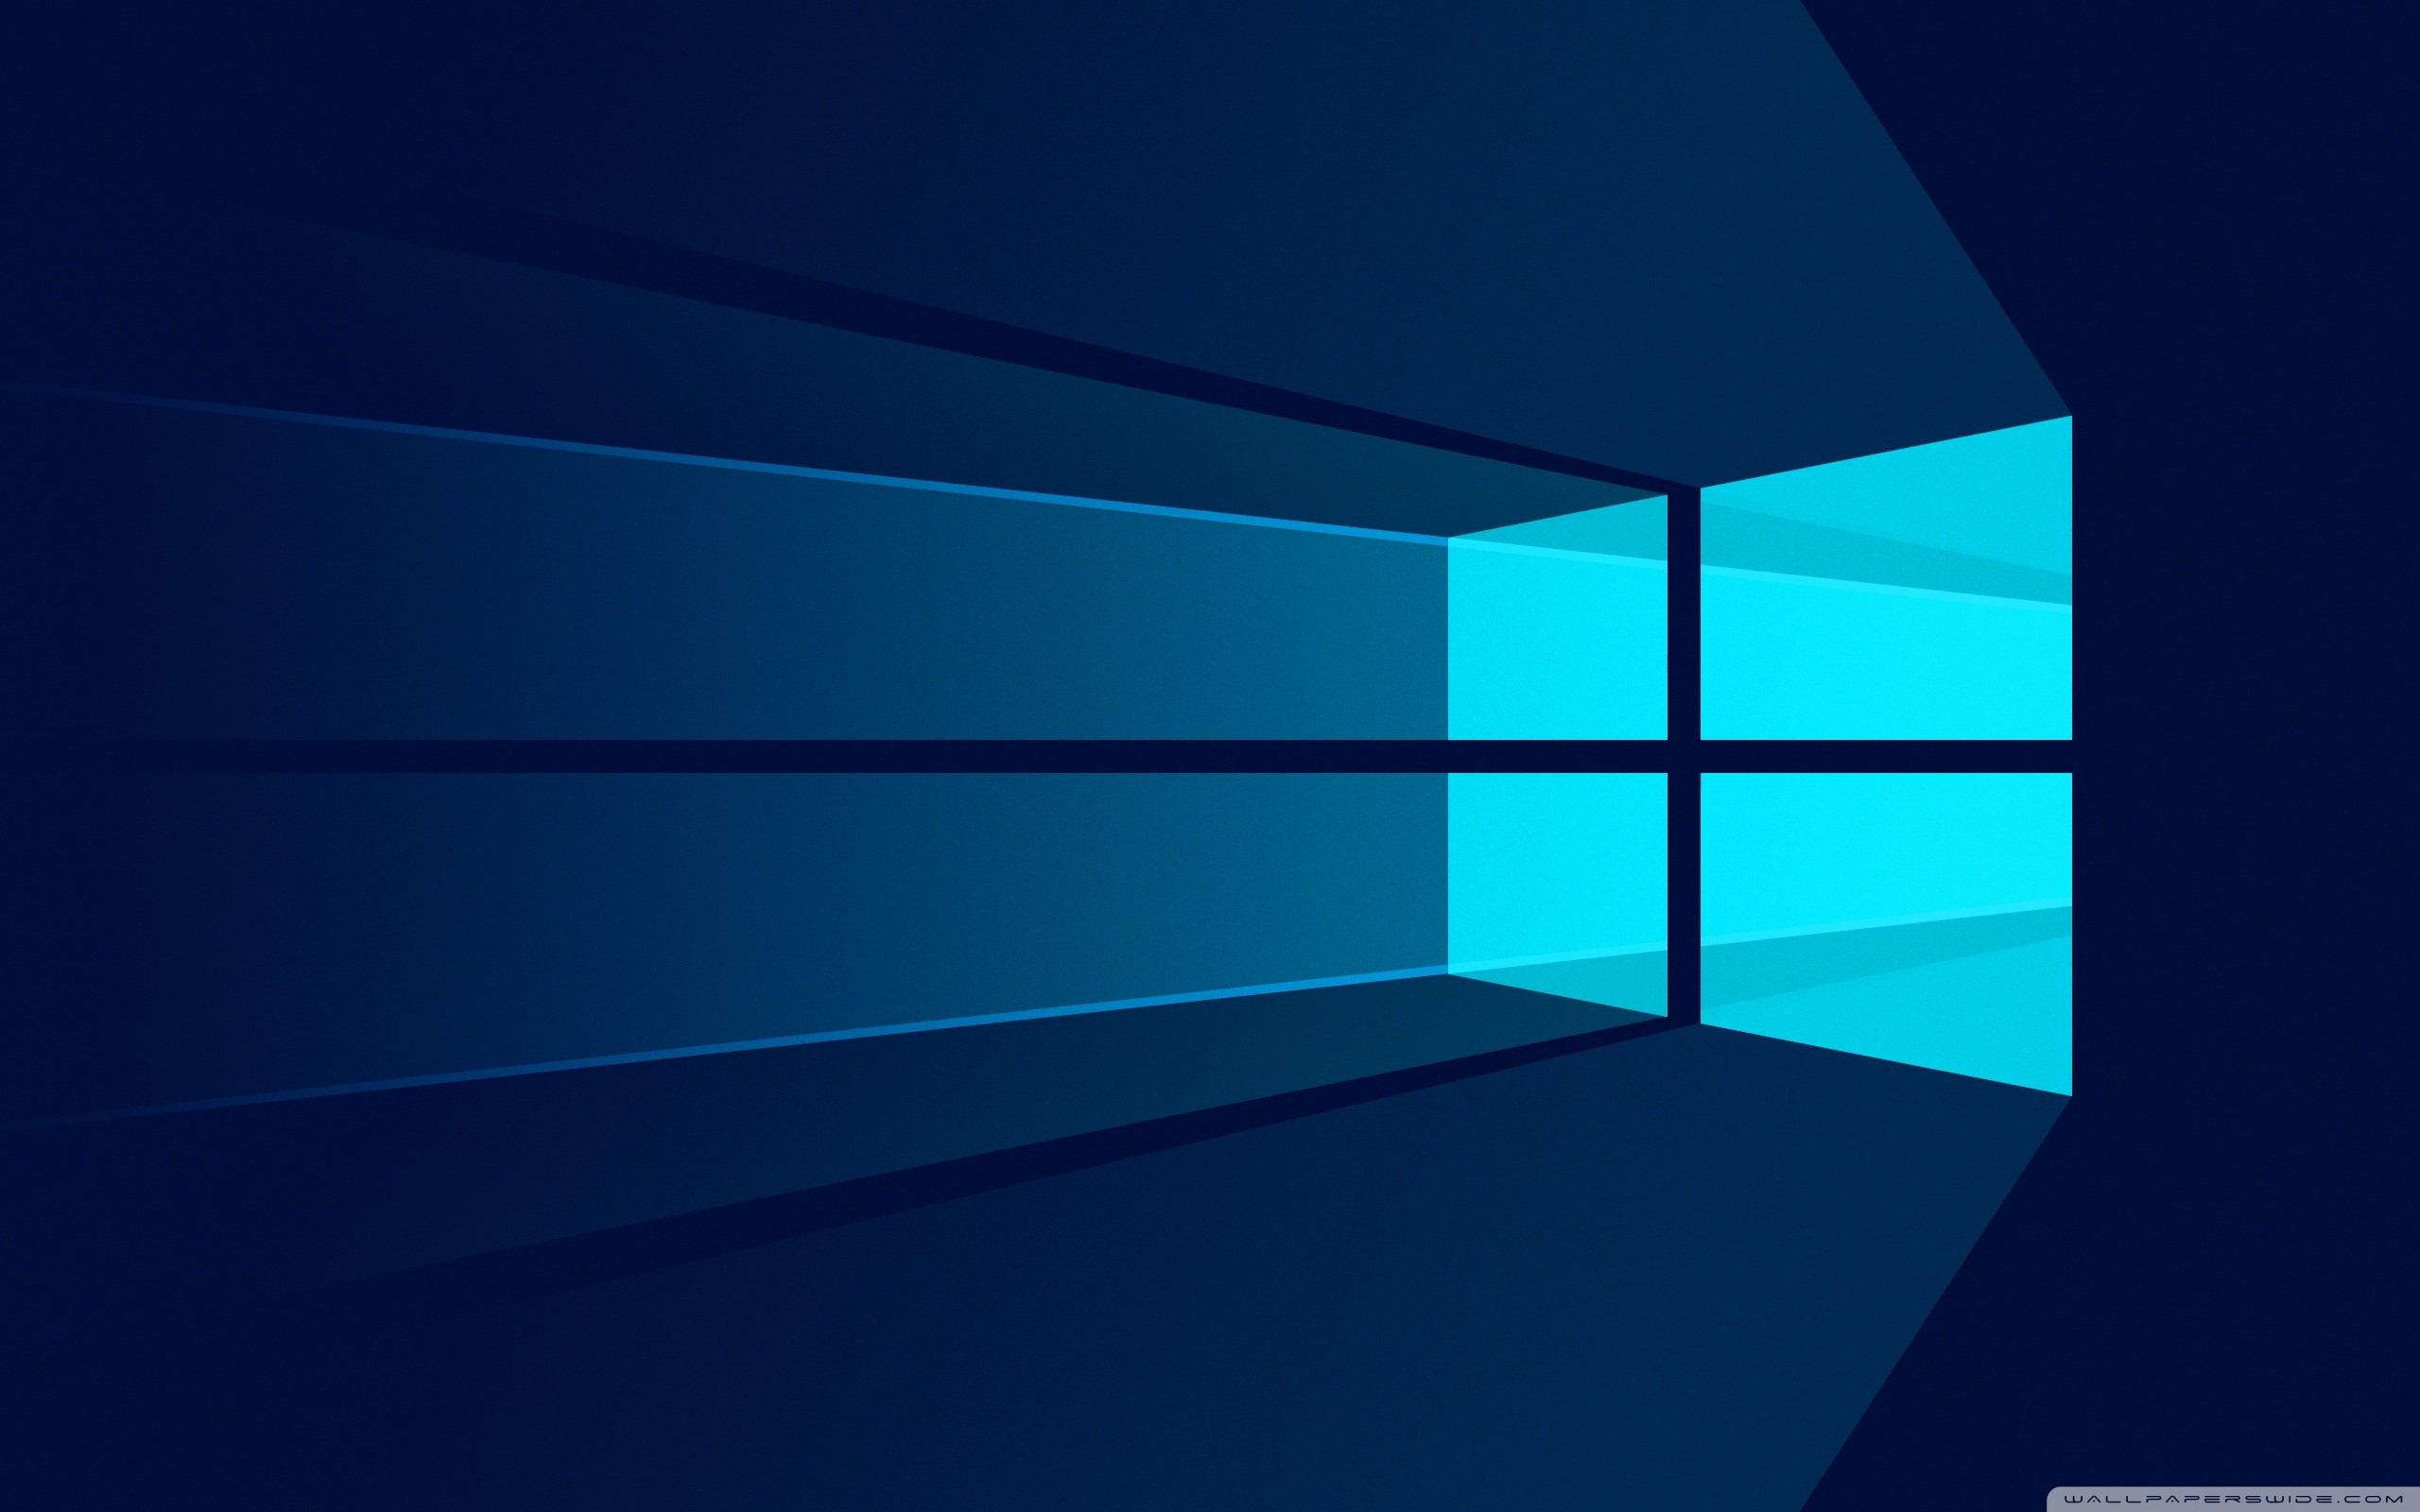 Windows 10 Hd Wallpapers 74 Images